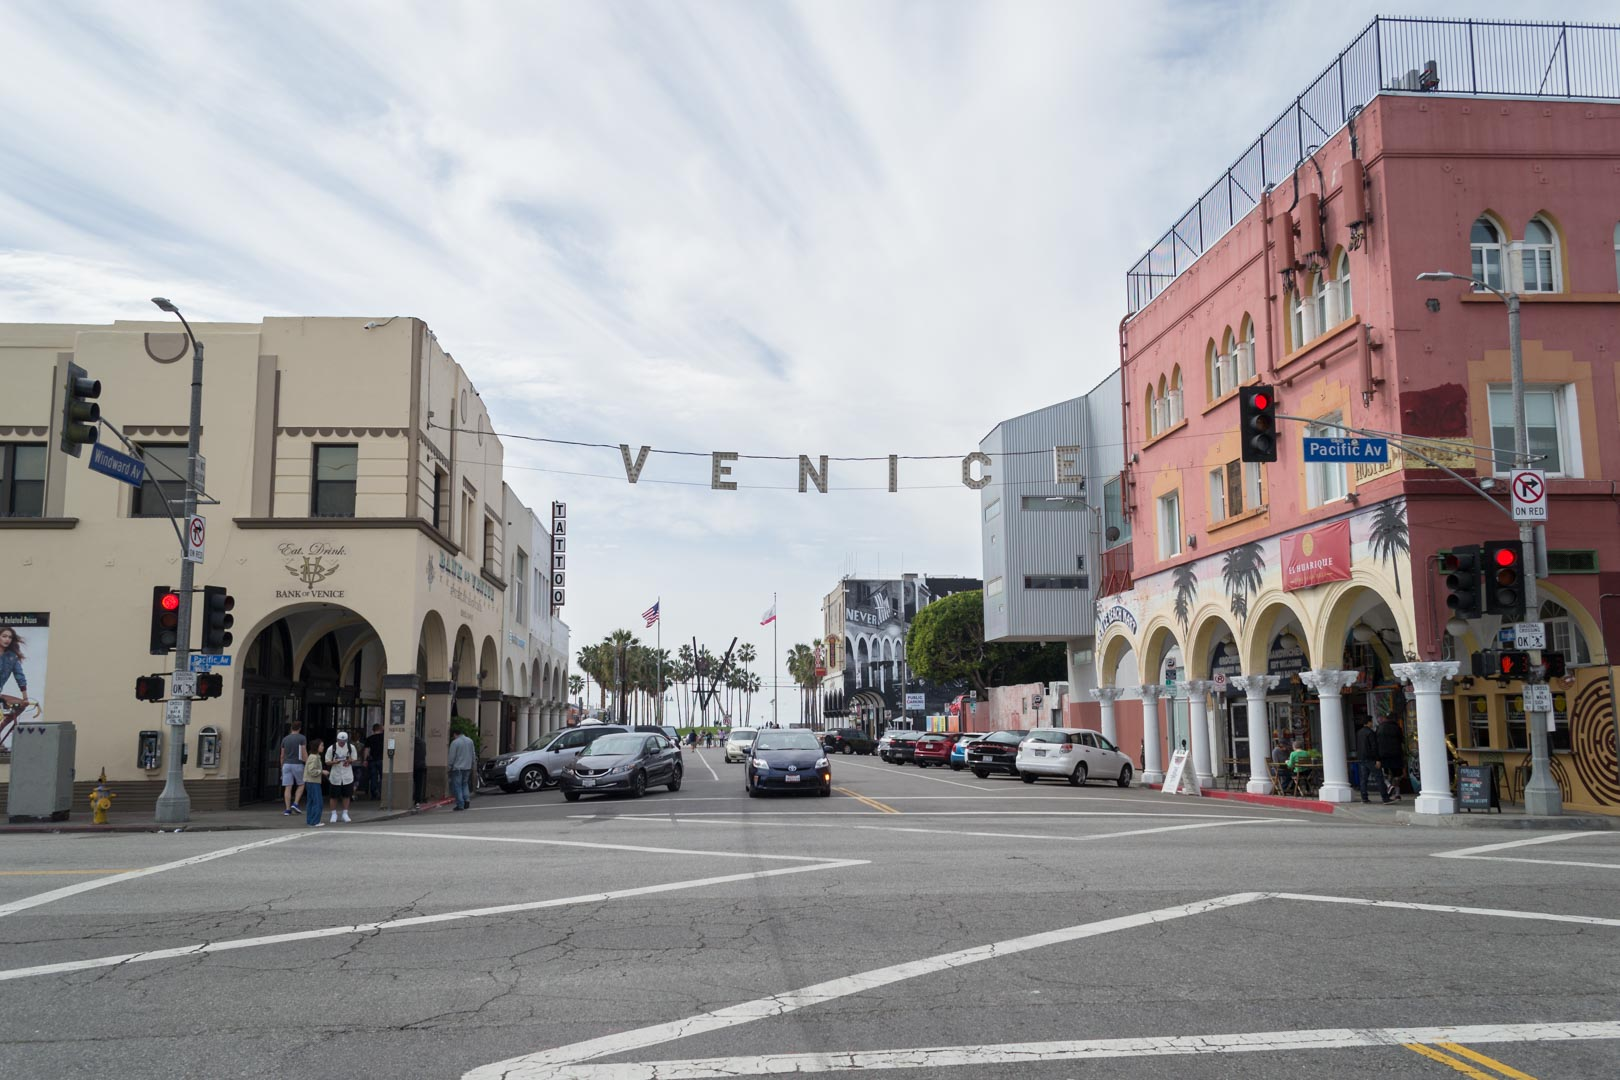 Los Angeles dans le quartier de Venice Beach